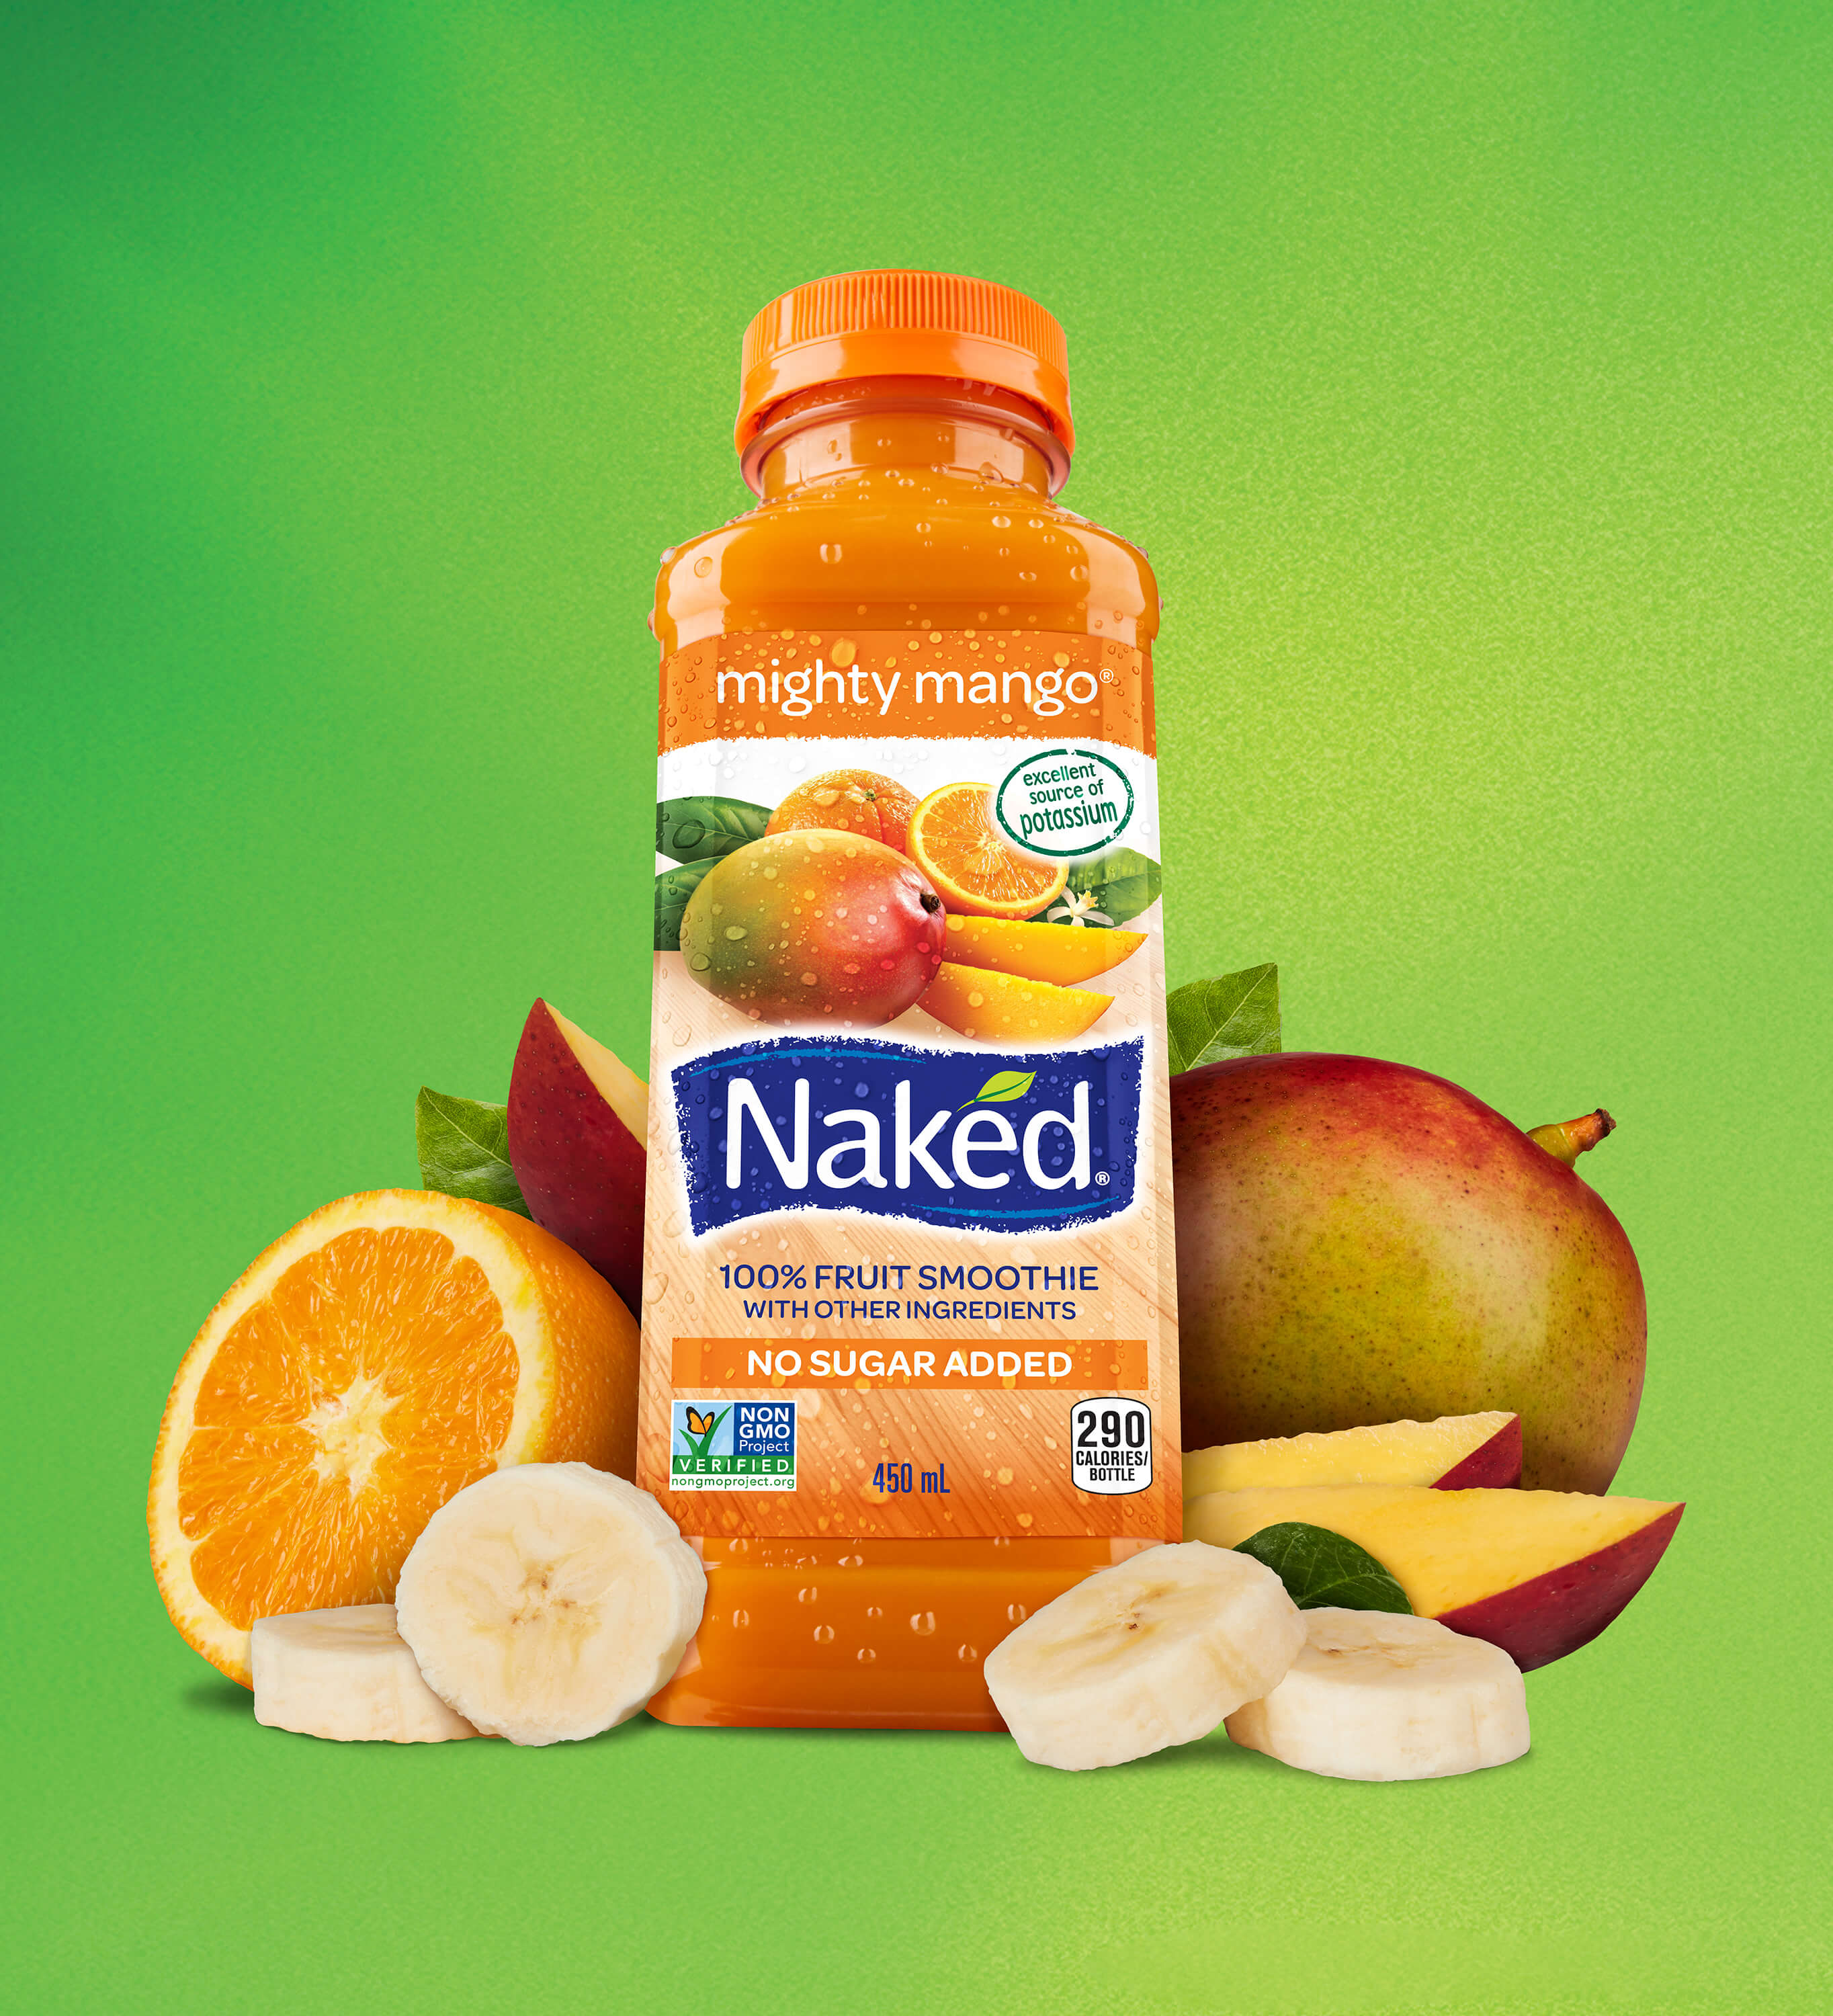 Unified Content, Unified Content Toronto, Aaron Cobb, Naked Juice, Smoothie, Healthy, Juice, Drink, Advertising, Healthy, Healthy choices, food, mango, mighty mango, product, advertising, ad,